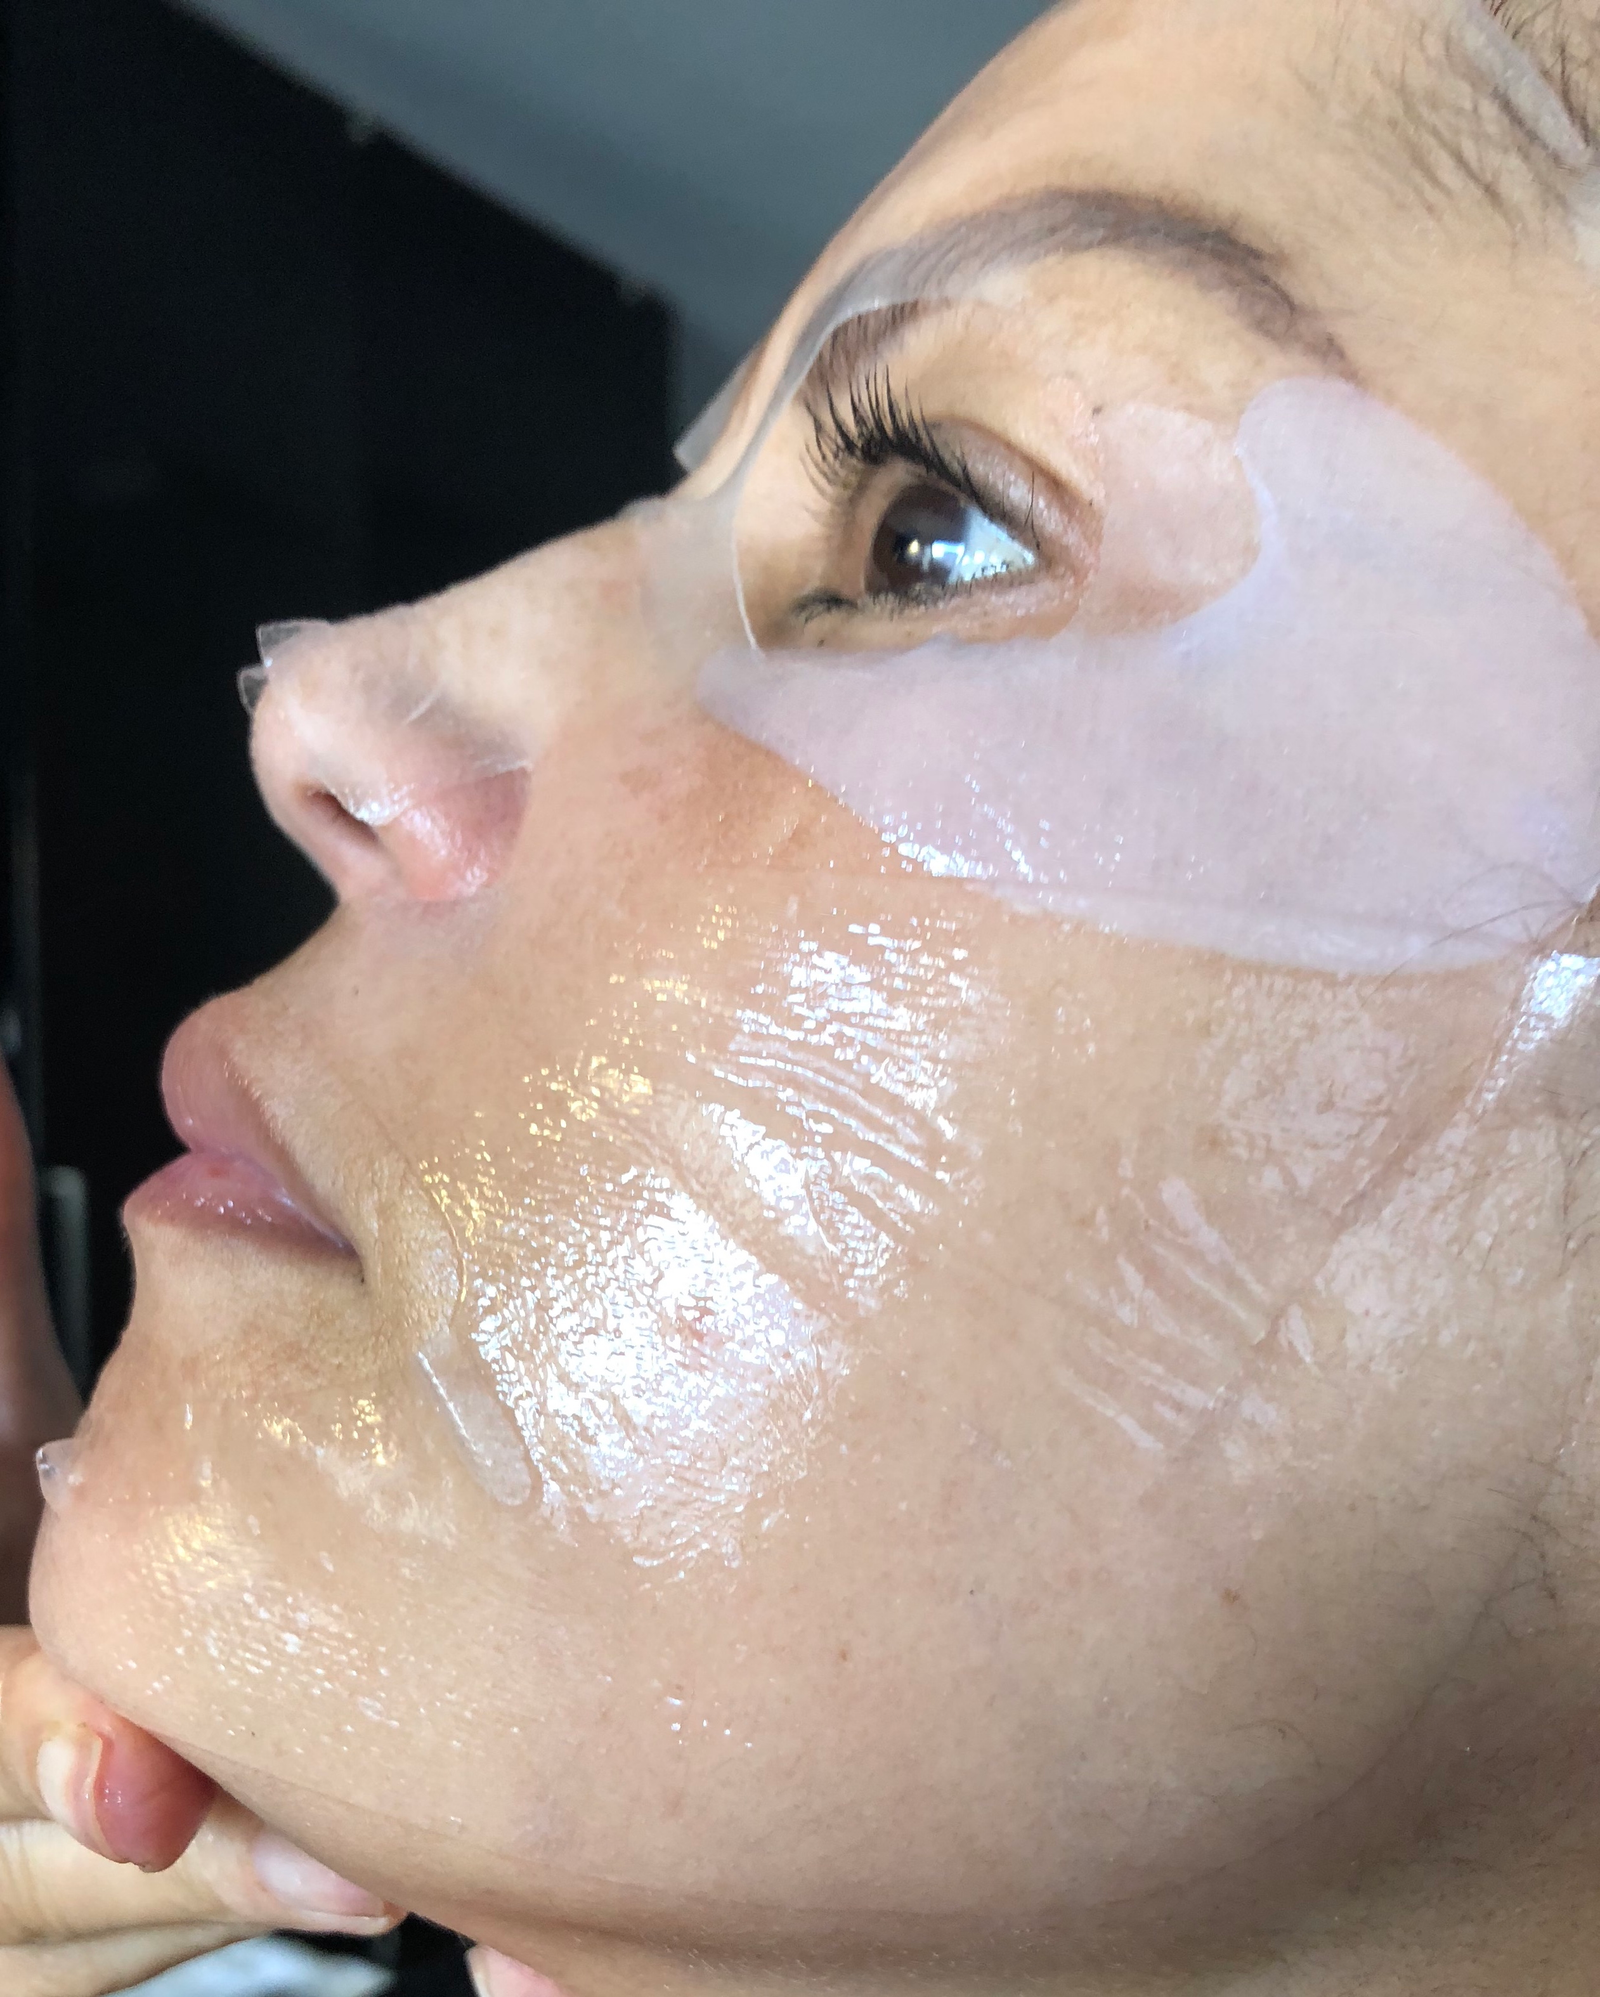 Layering sheet masks for maximum effect: See our slide show for DIY spa-night supplies. (P.S.: I look scary now, but it gets pretty later. I promise.)